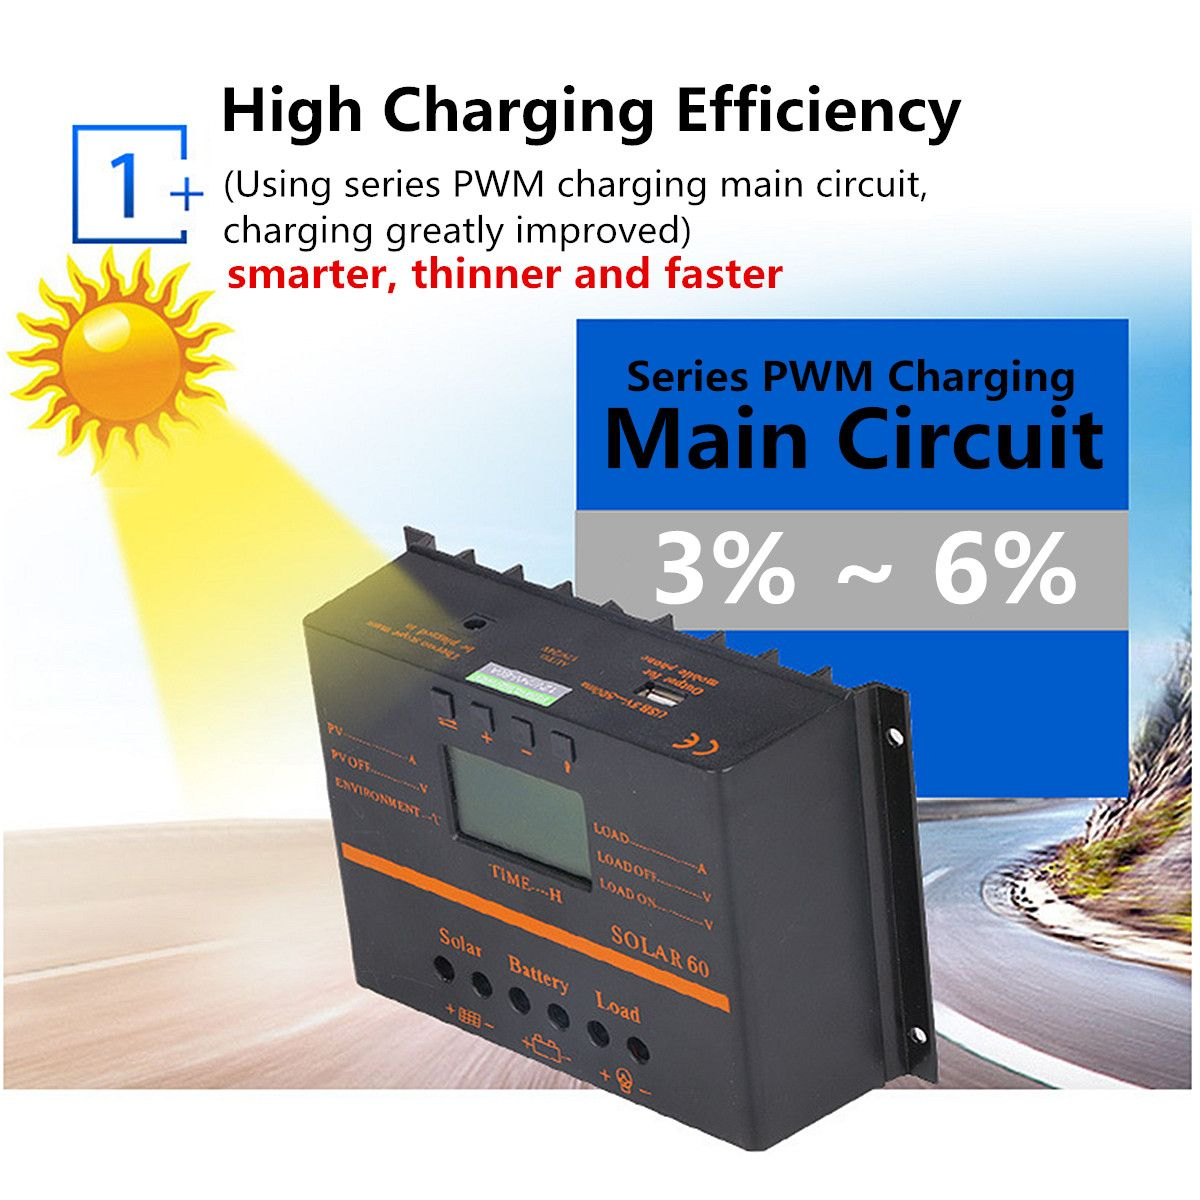 Solar Panel Charge Controller Battery 12V/24V Auto LCD Display PWM Regulator USB 40A/50A/60A/80A Overload Protection Automatic